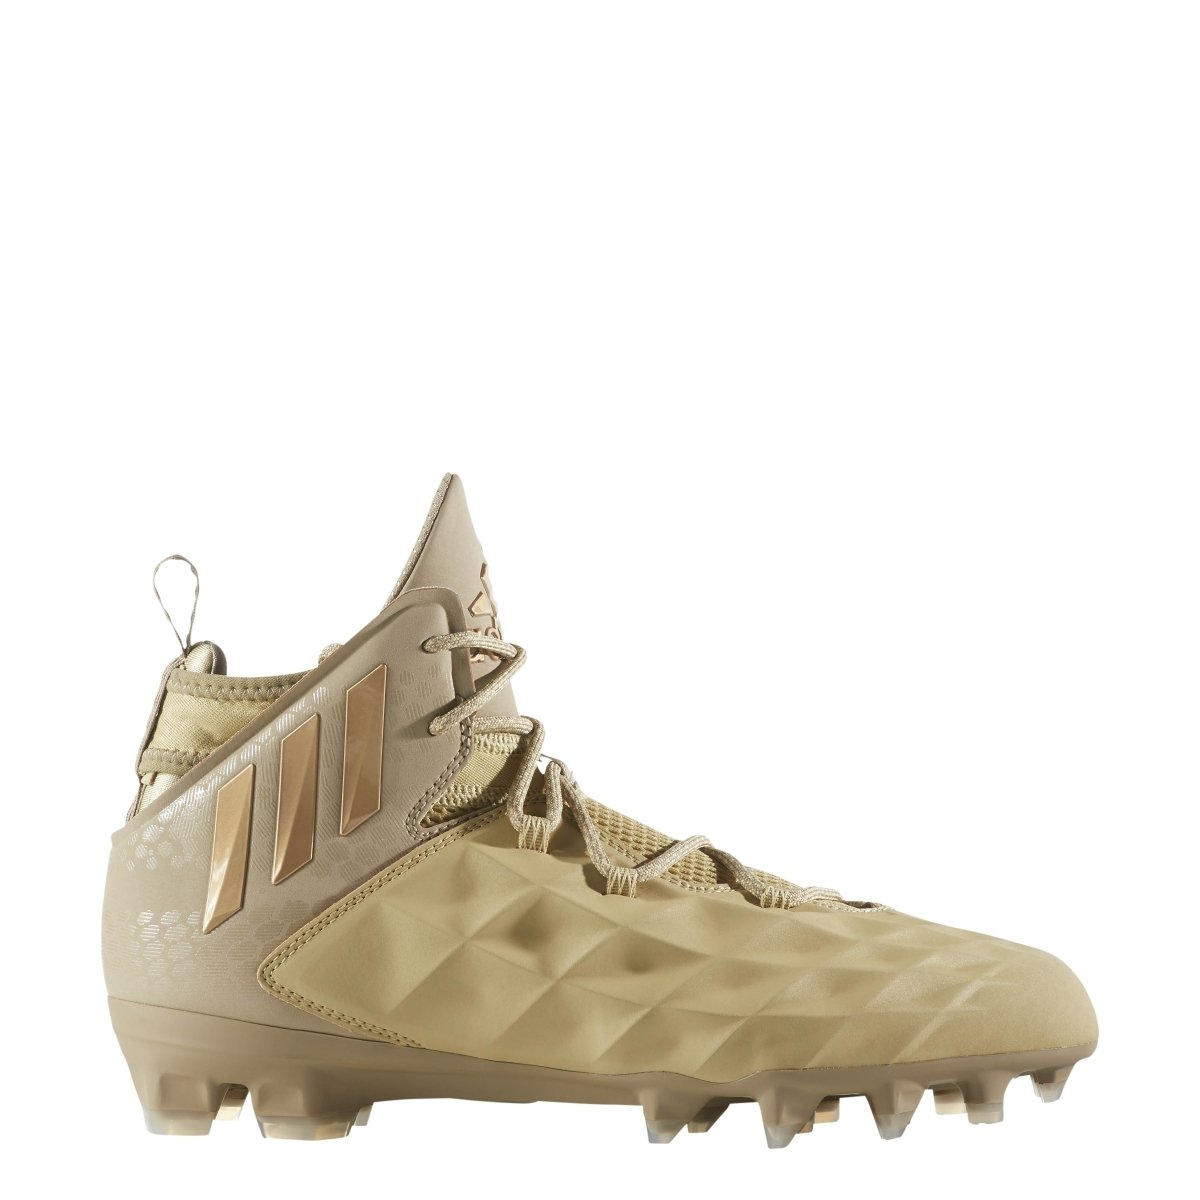 adidas Freak Lax Mid Cleat - Unisex Lacrosse 11.5 Sand/Copper Metallic by adidas